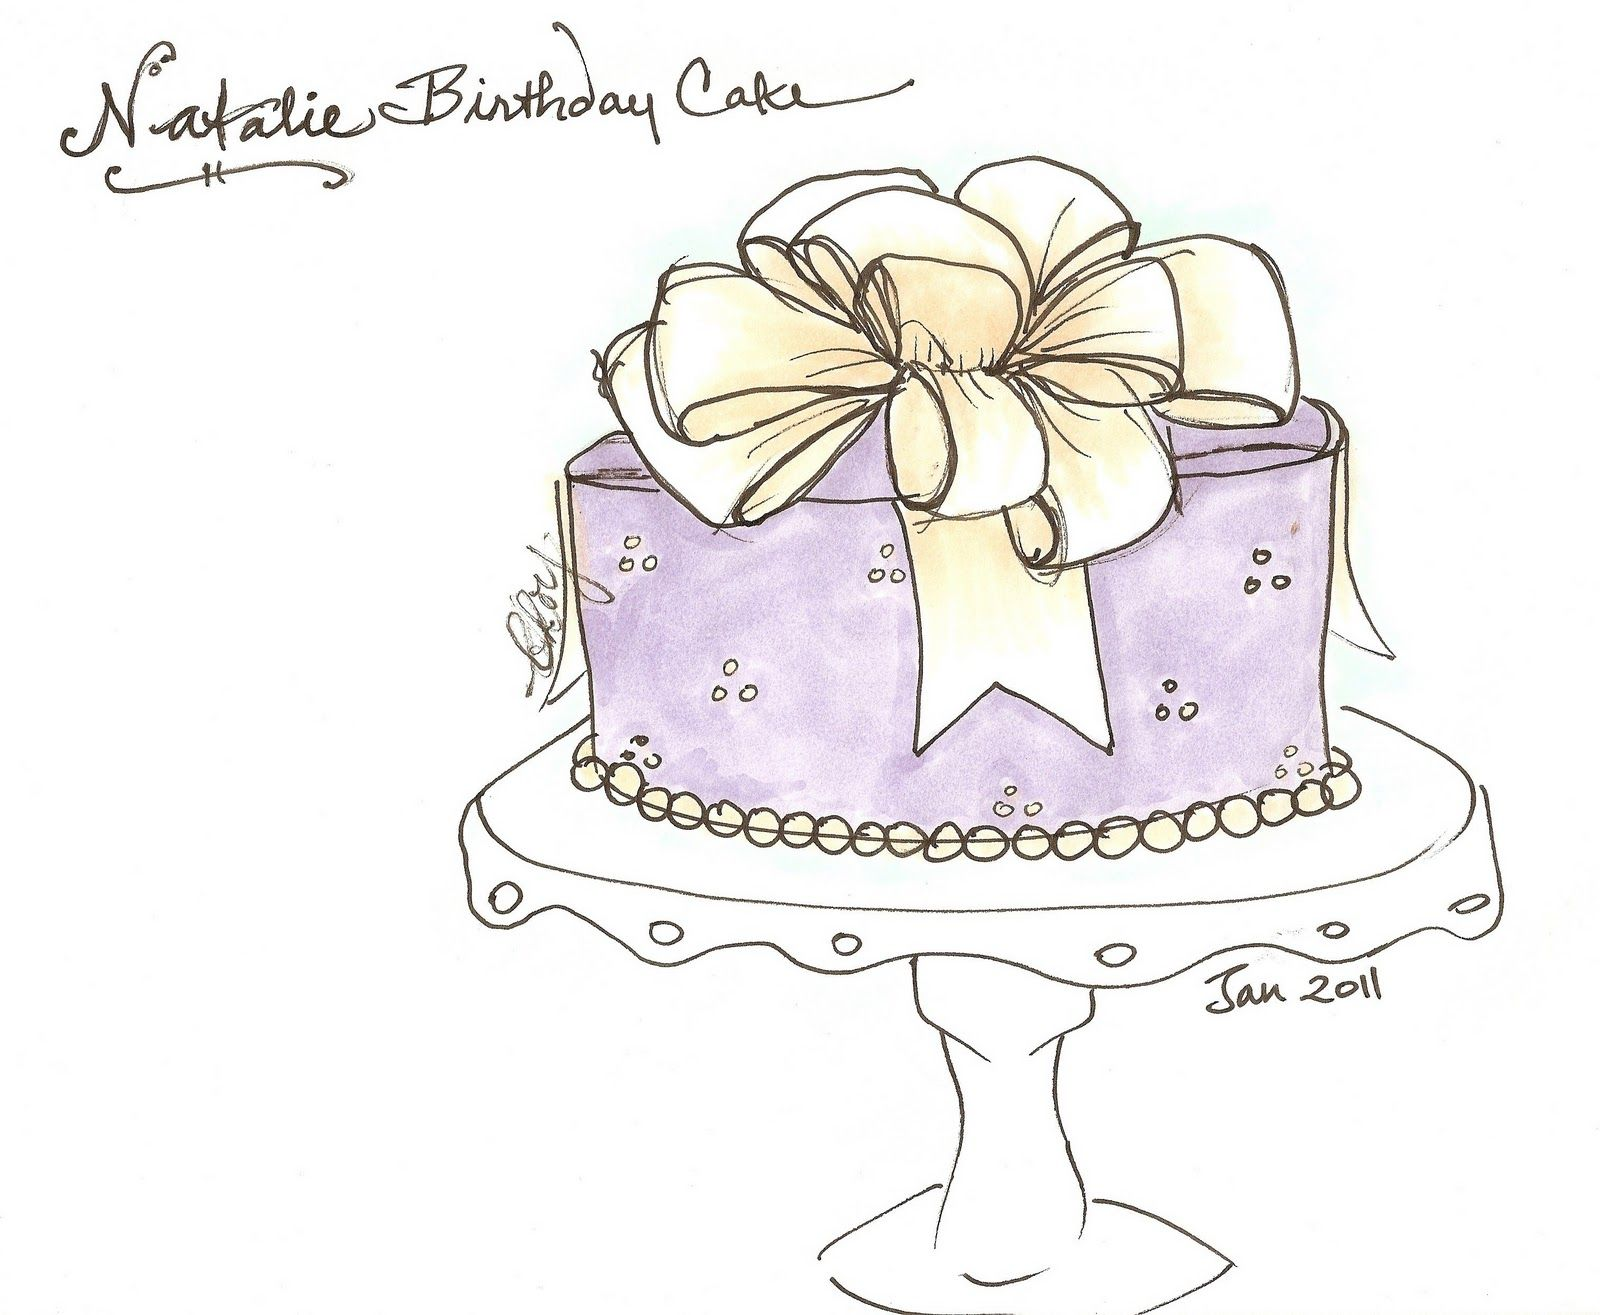 Pin By Kristi Oltman On Postres Cake Drawing Diary Decoration Cake Sketch